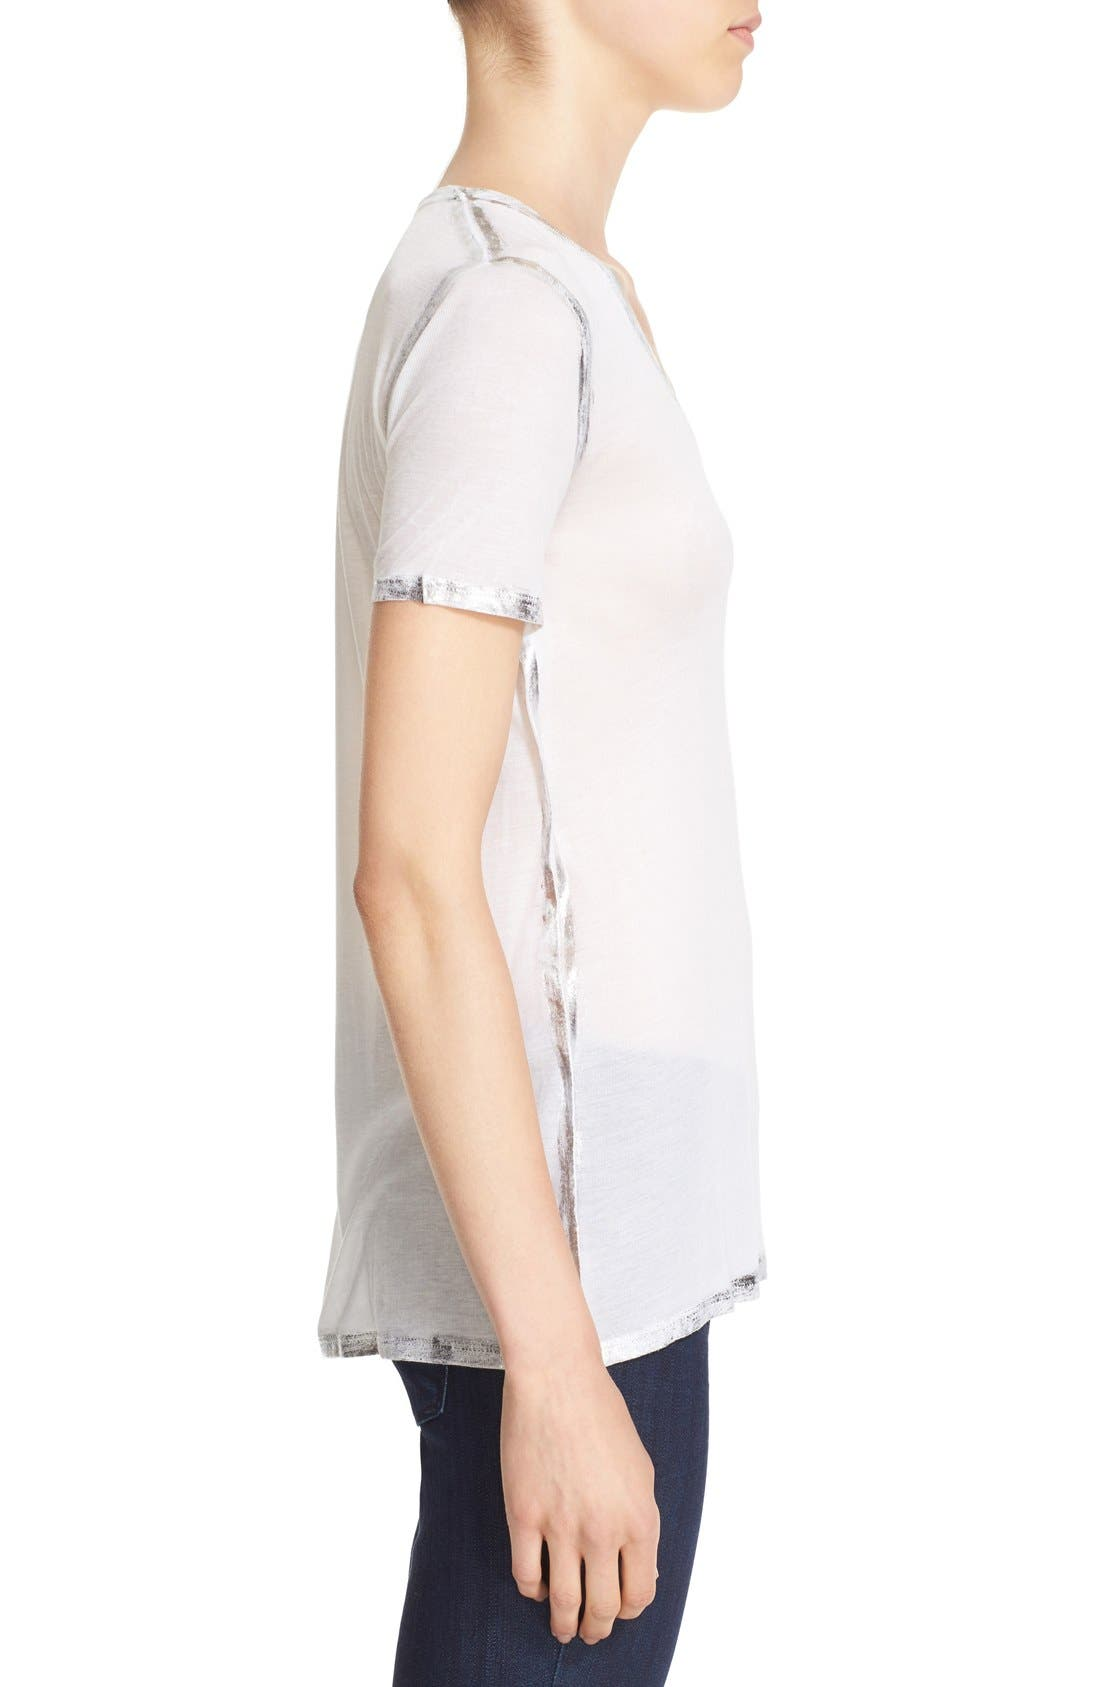 ZADIG & VOLTAIRE,                             'Tino' Foil Accent Tee,                             Alternate thumbnail 2, color,                             116